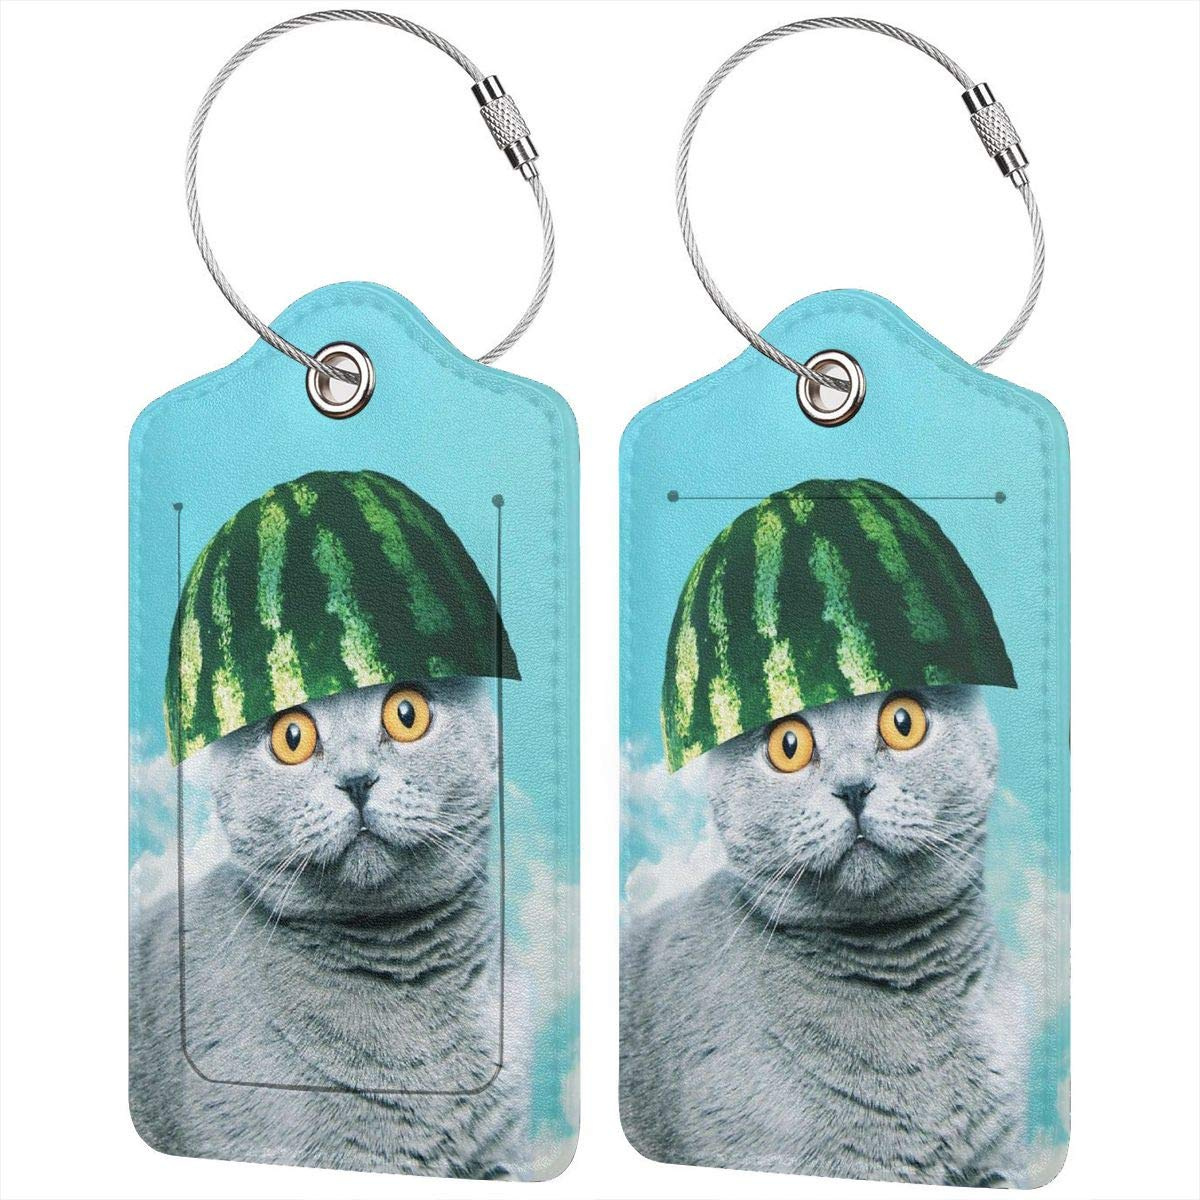 Leather Luggage Tag Funny Watermelon Cat Sky Luggage Tags For Suitcase Travel Lover Gifts For Men Women 2 PCS